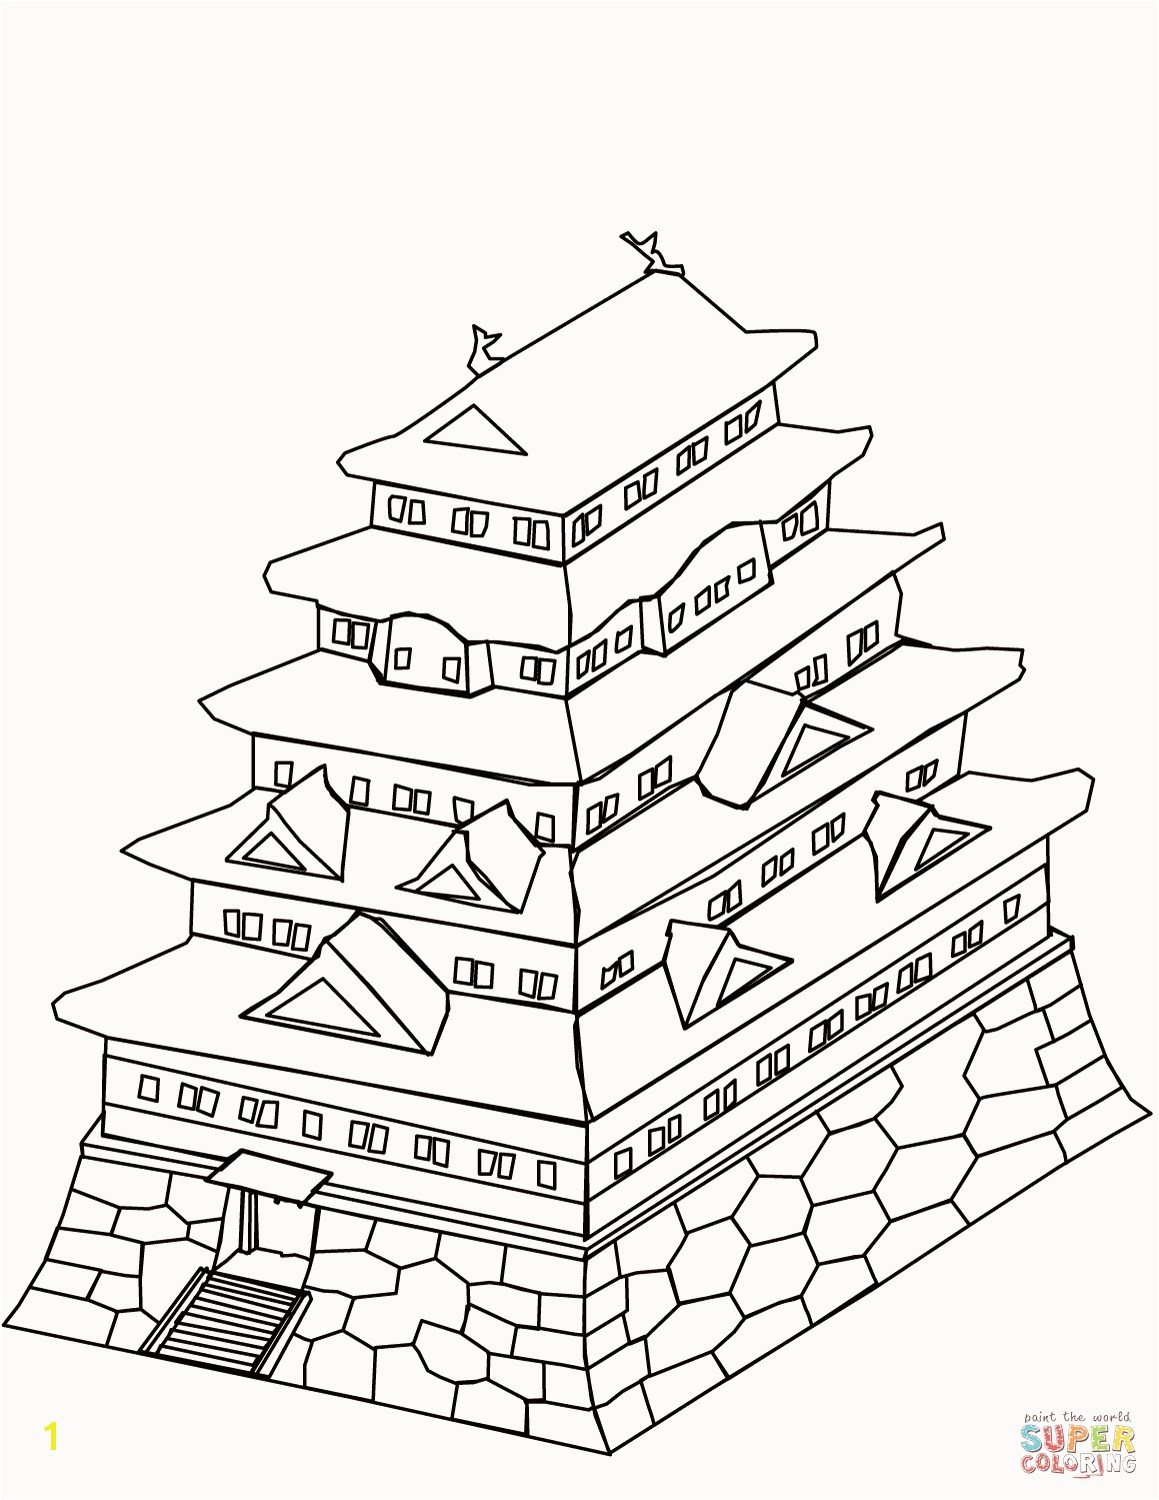 Oregon State Flag Coloring Page Inspirational Japan Coloring Pages 2 30 Beautiful oregon State Flag